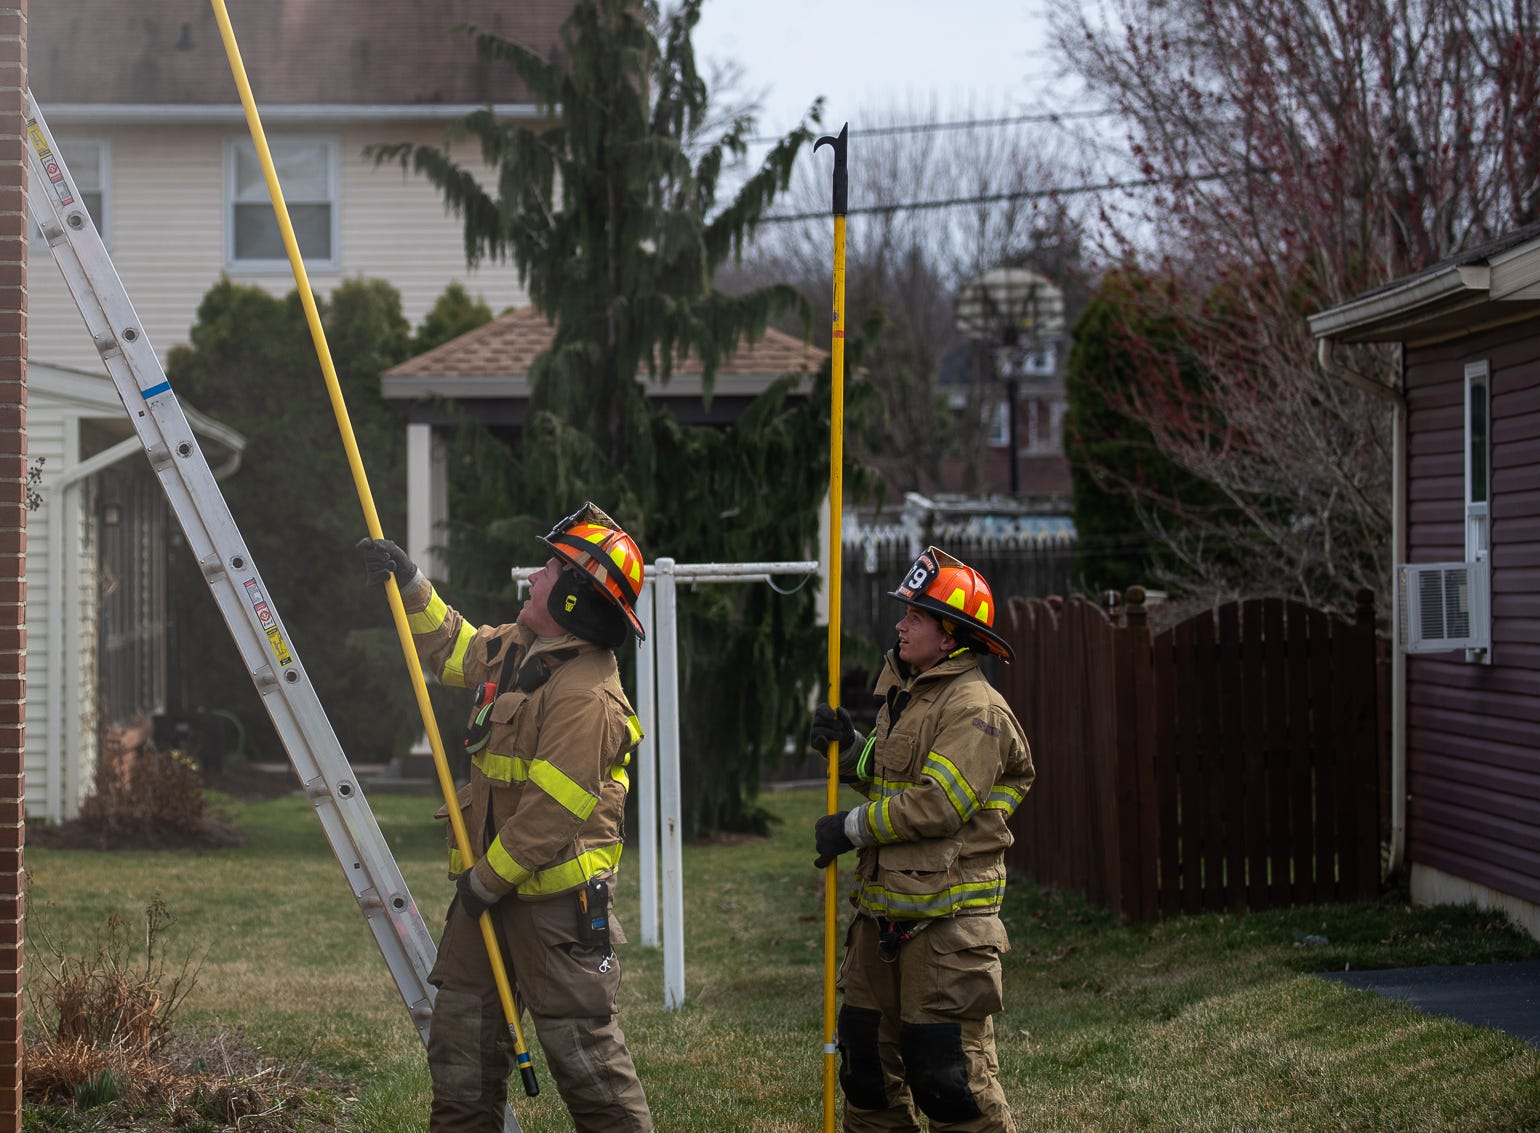 Junior firefighters work at the scene of a house fire on the 100 block of Mumma Ave., Saturday, March 30, 2019, in Penn Township. No one was injured in the fire, which appears to have been an accidental fire in the kitchen, said Hanover Area Fire & Rescue Chief Tony Clousher.